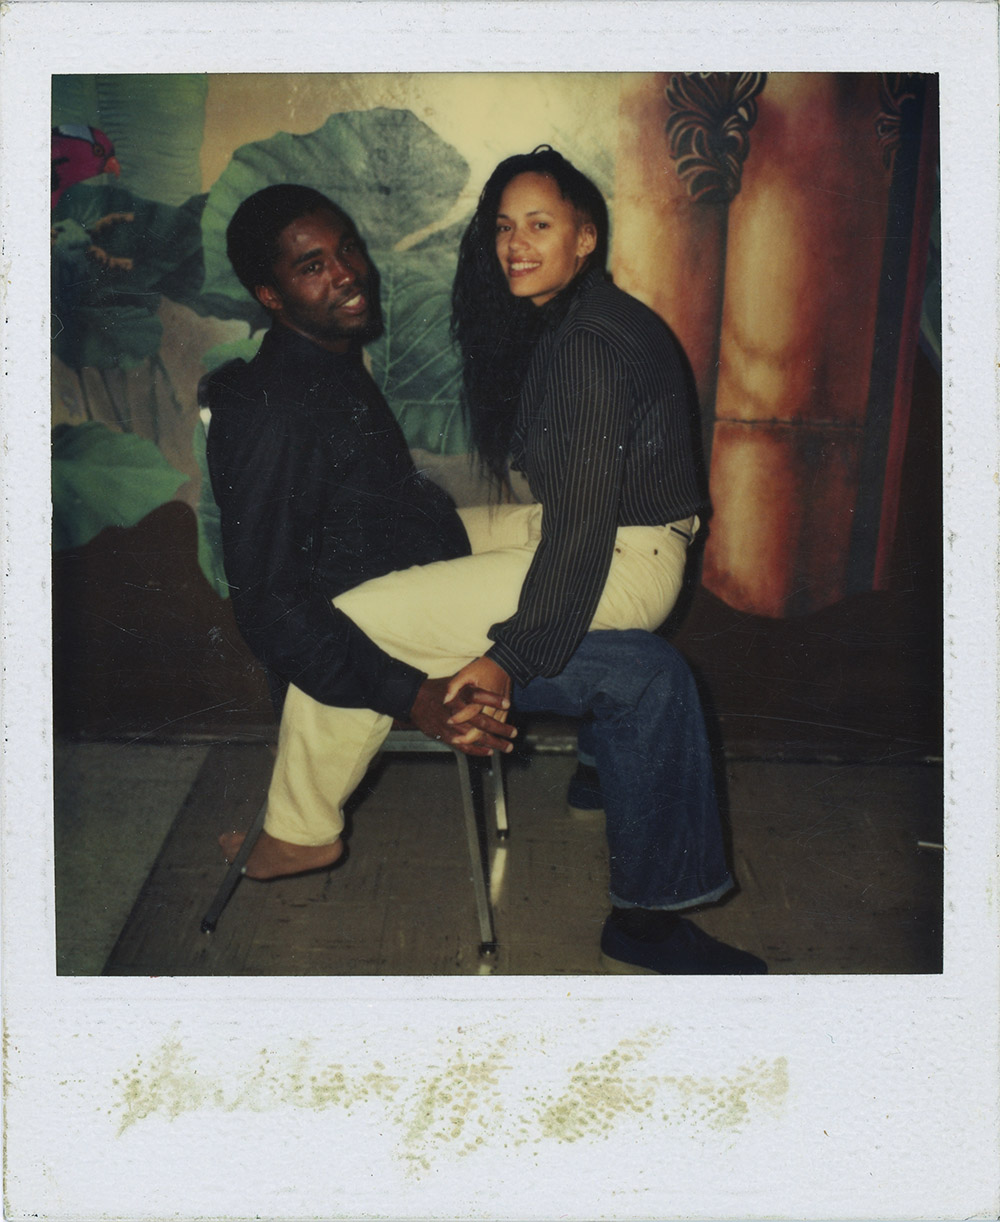 griot-mag-interview-Fade Resistance | Zunn Lee's project restores orphaned Polaroids of Black families-7f